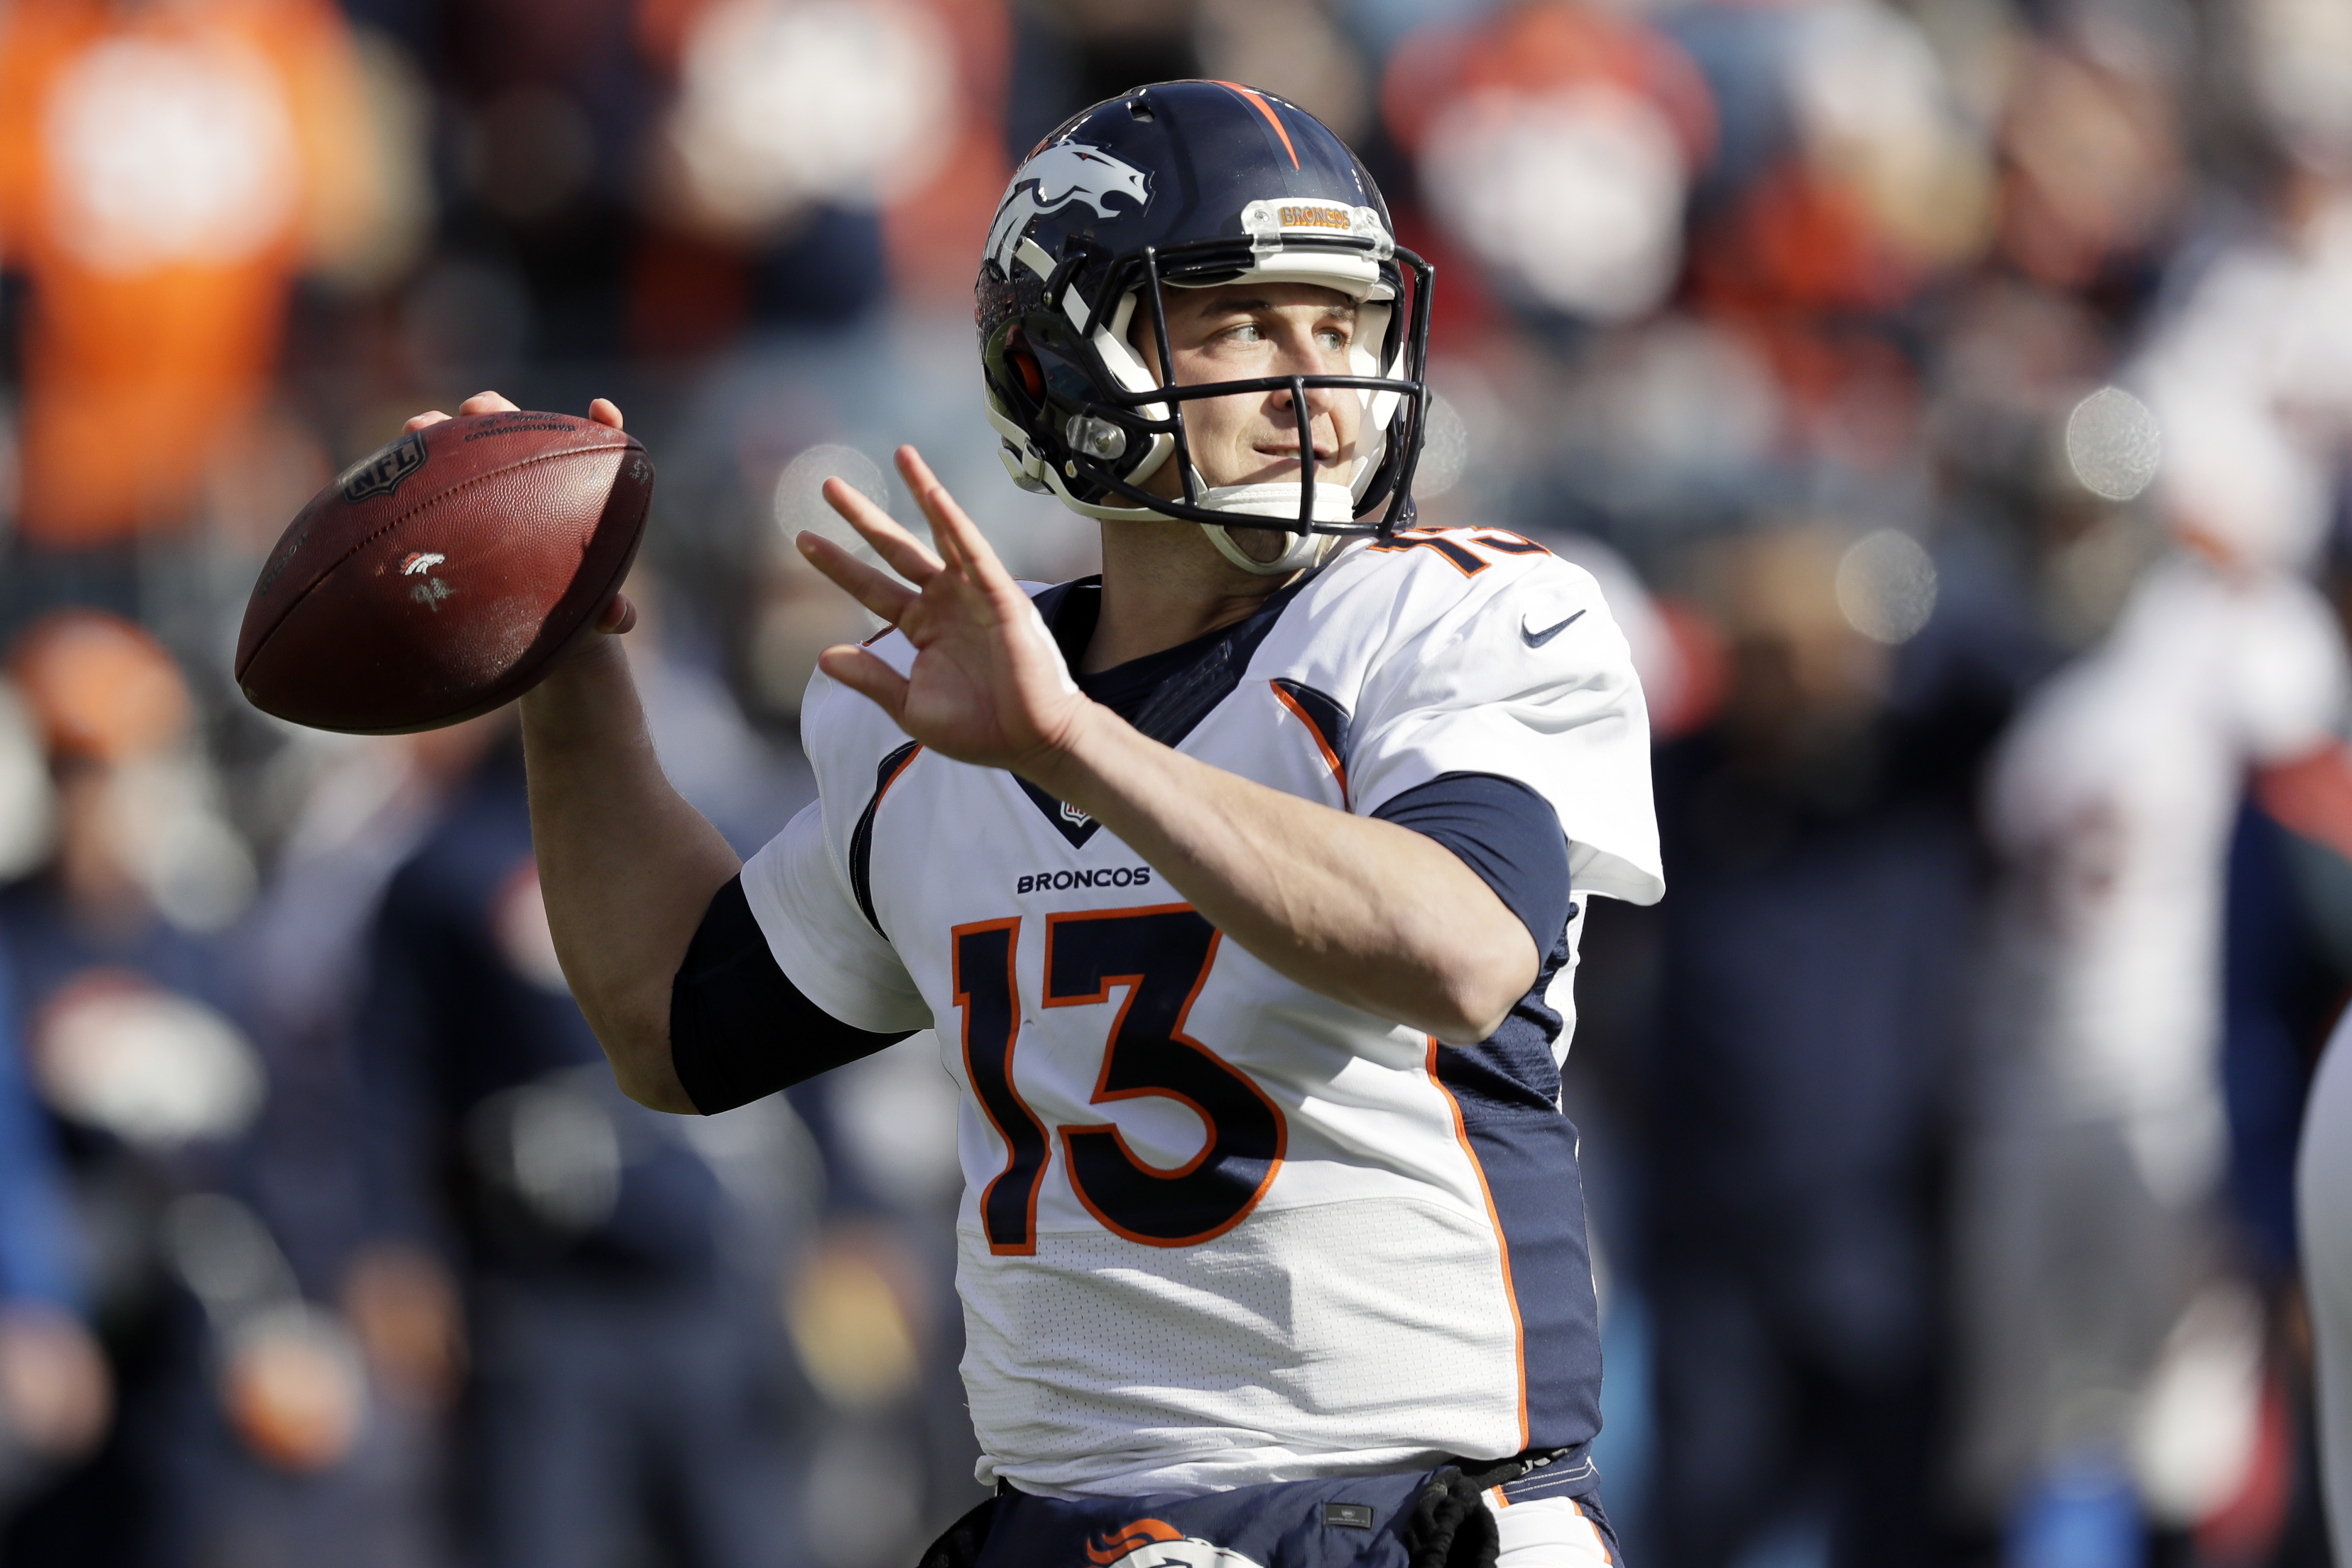 FILE - In this Dec. 11, 2016, file photo, Denver Broncos quarterback Trevor Siemian passes against the Tennessee Titans in the first half of an NFL football game, in Nashville, Tenn. Brady-Siemian. It doesn't have the same ring to it as Brady-Manning. Sti